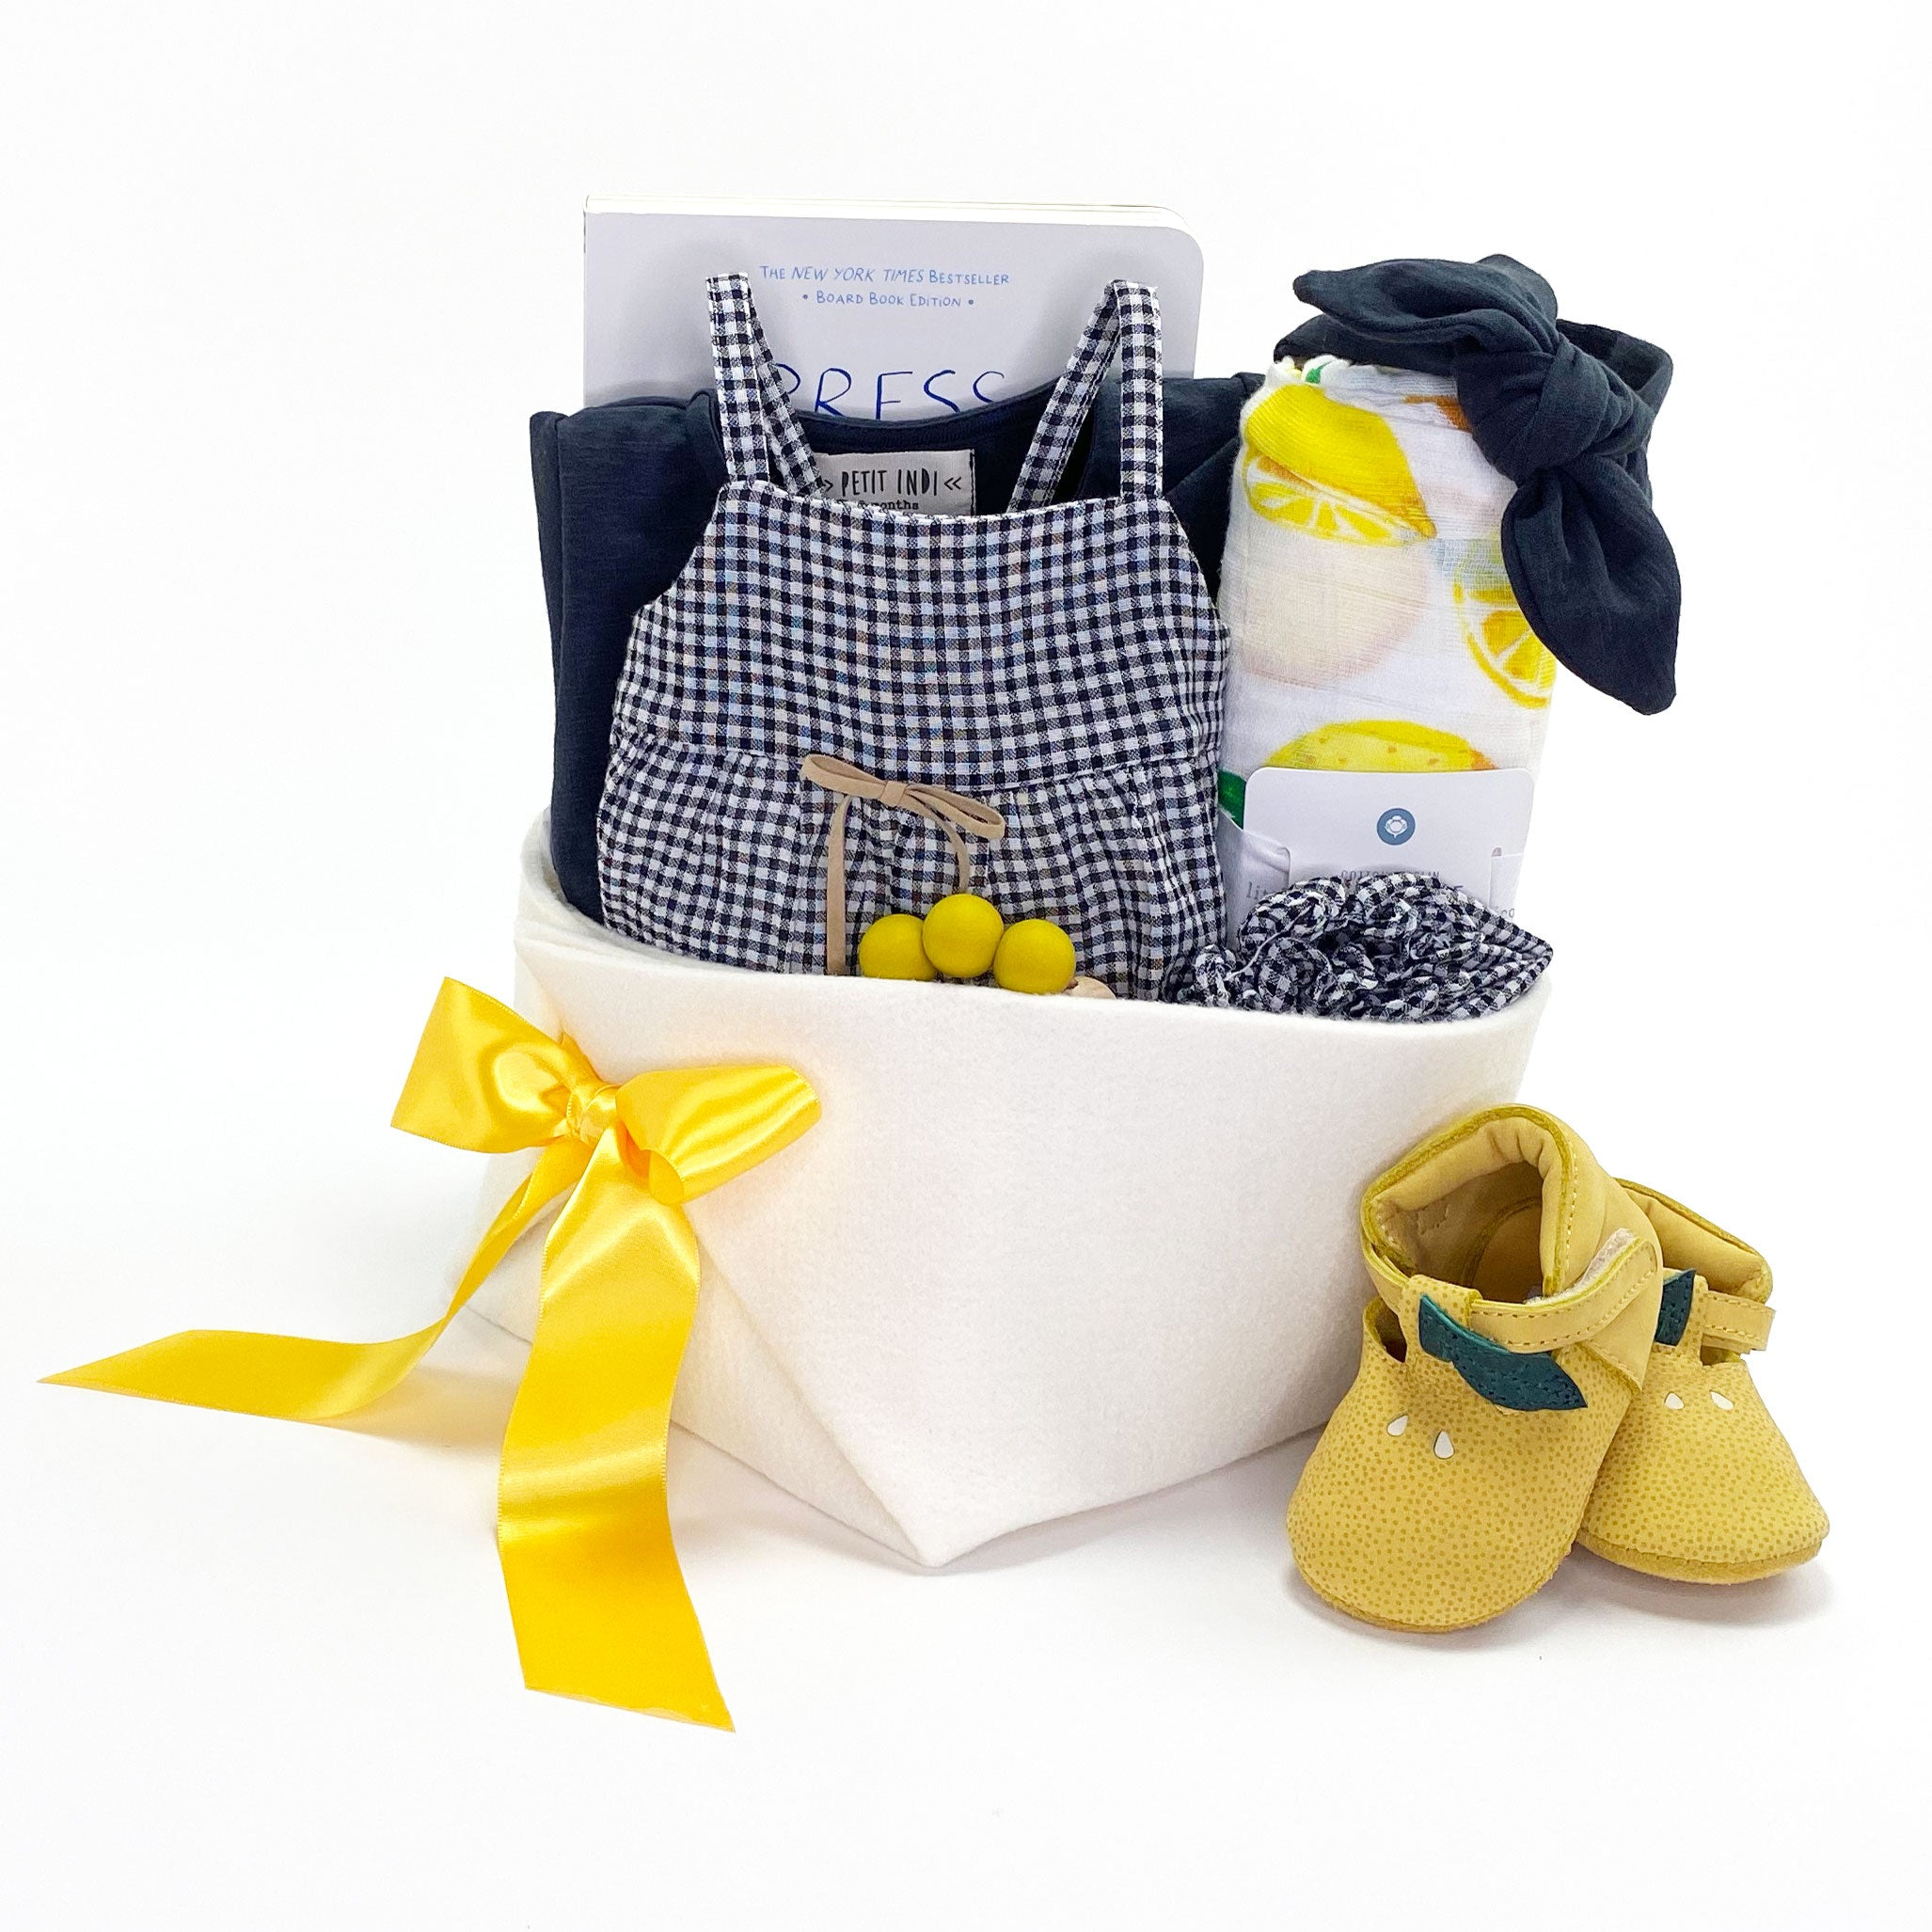 Luxury Baby Girl Gift Basket at Bonjour Baby Baskets, best Corporate Baby Gifts